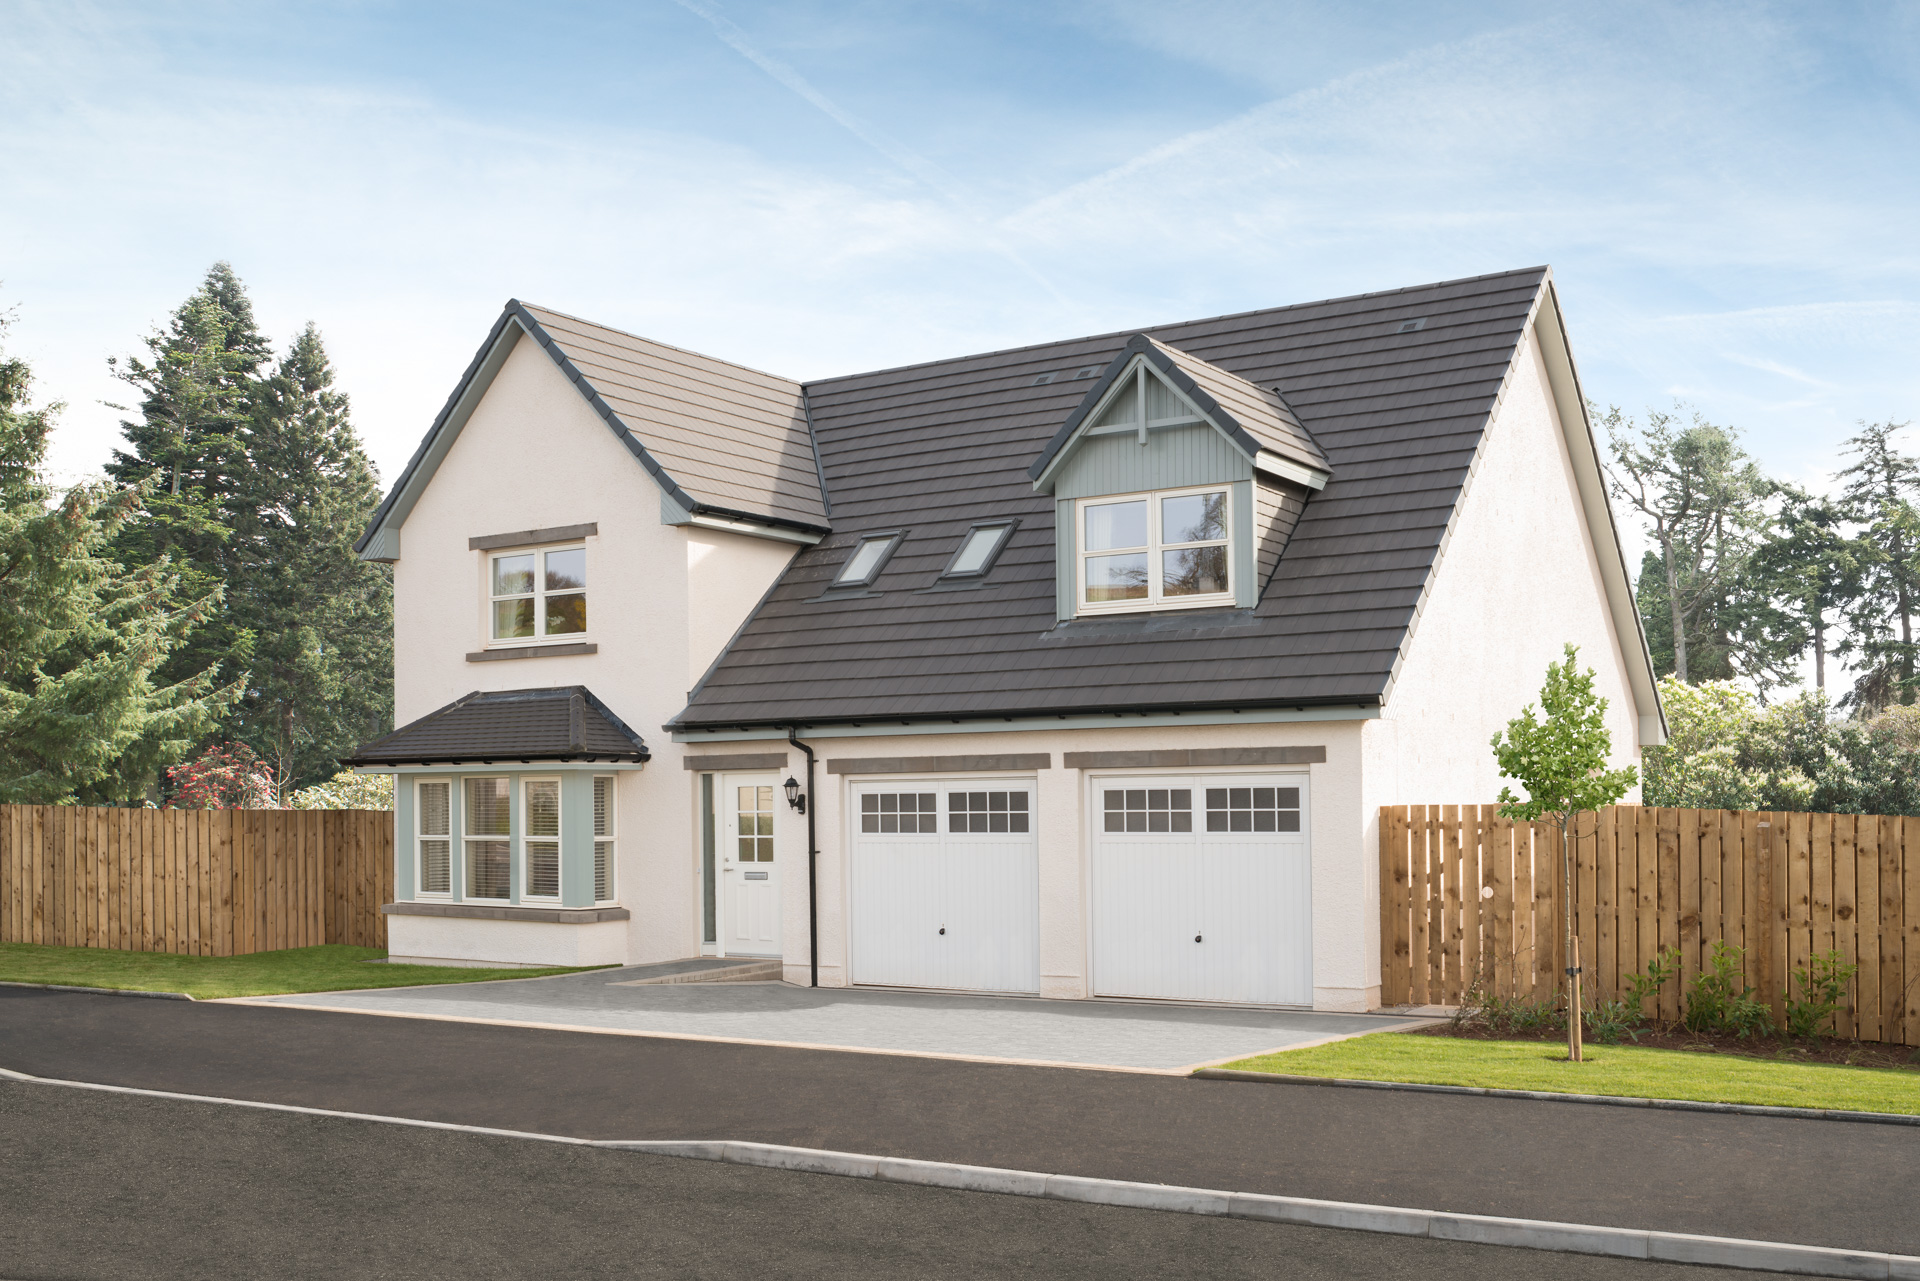 Plot 15 - The Marr - The Beeches